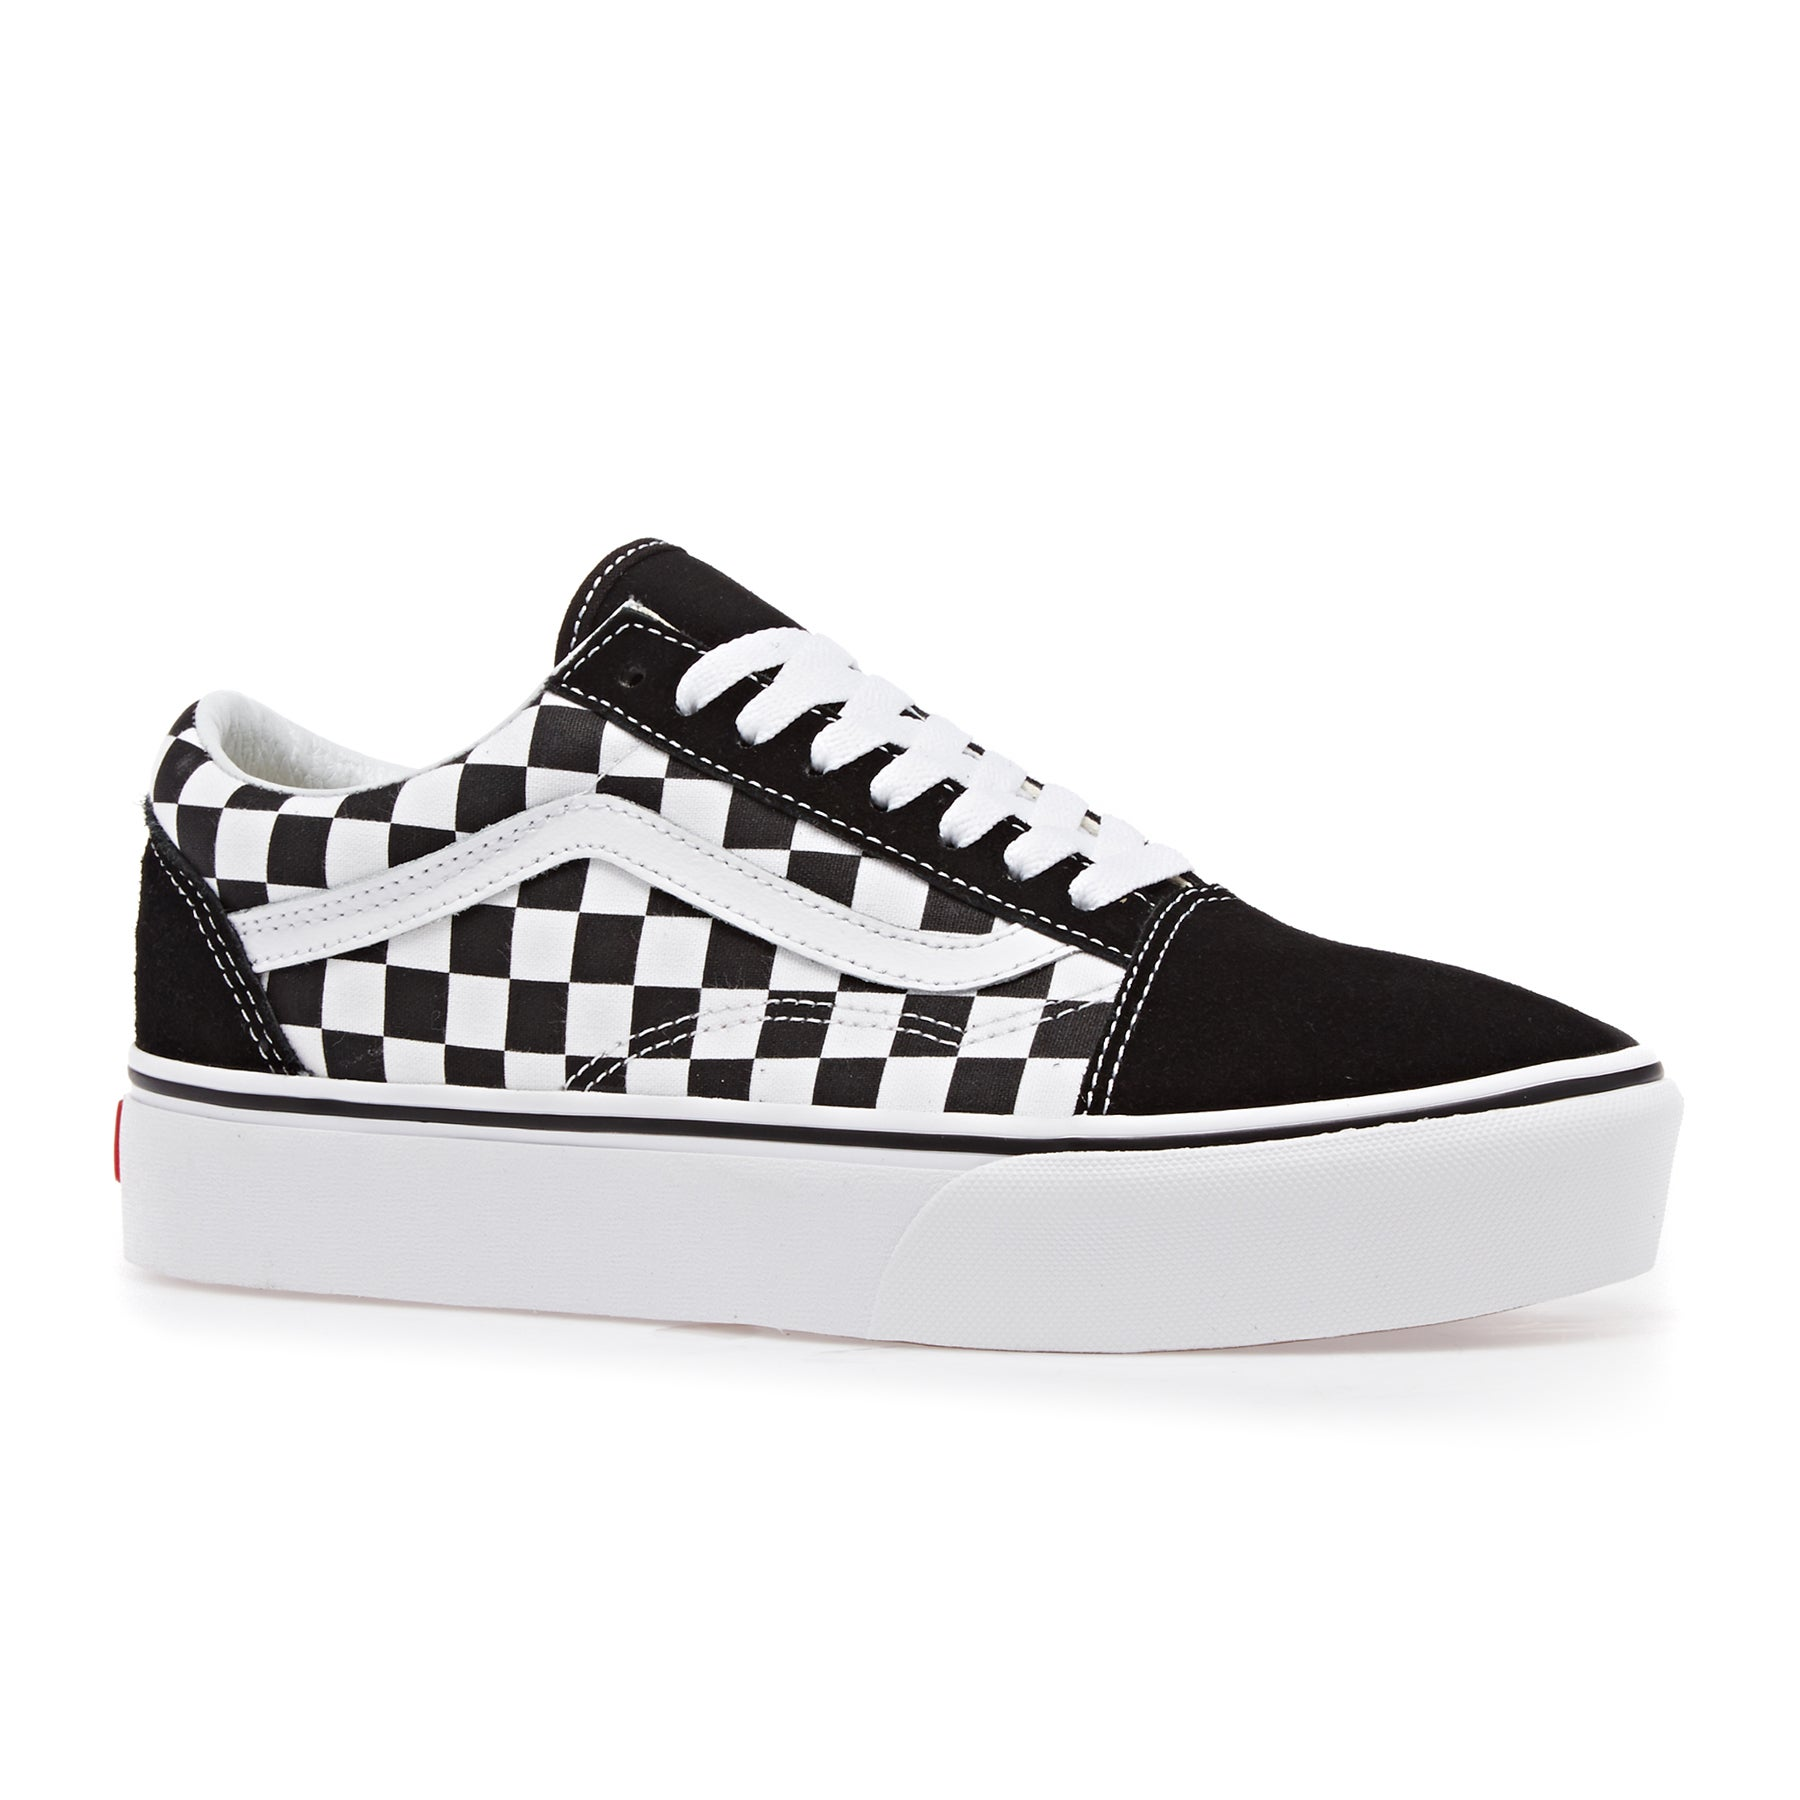 c321a74d6df0 Vans Old Skool Platform Shoes available from Surfdome